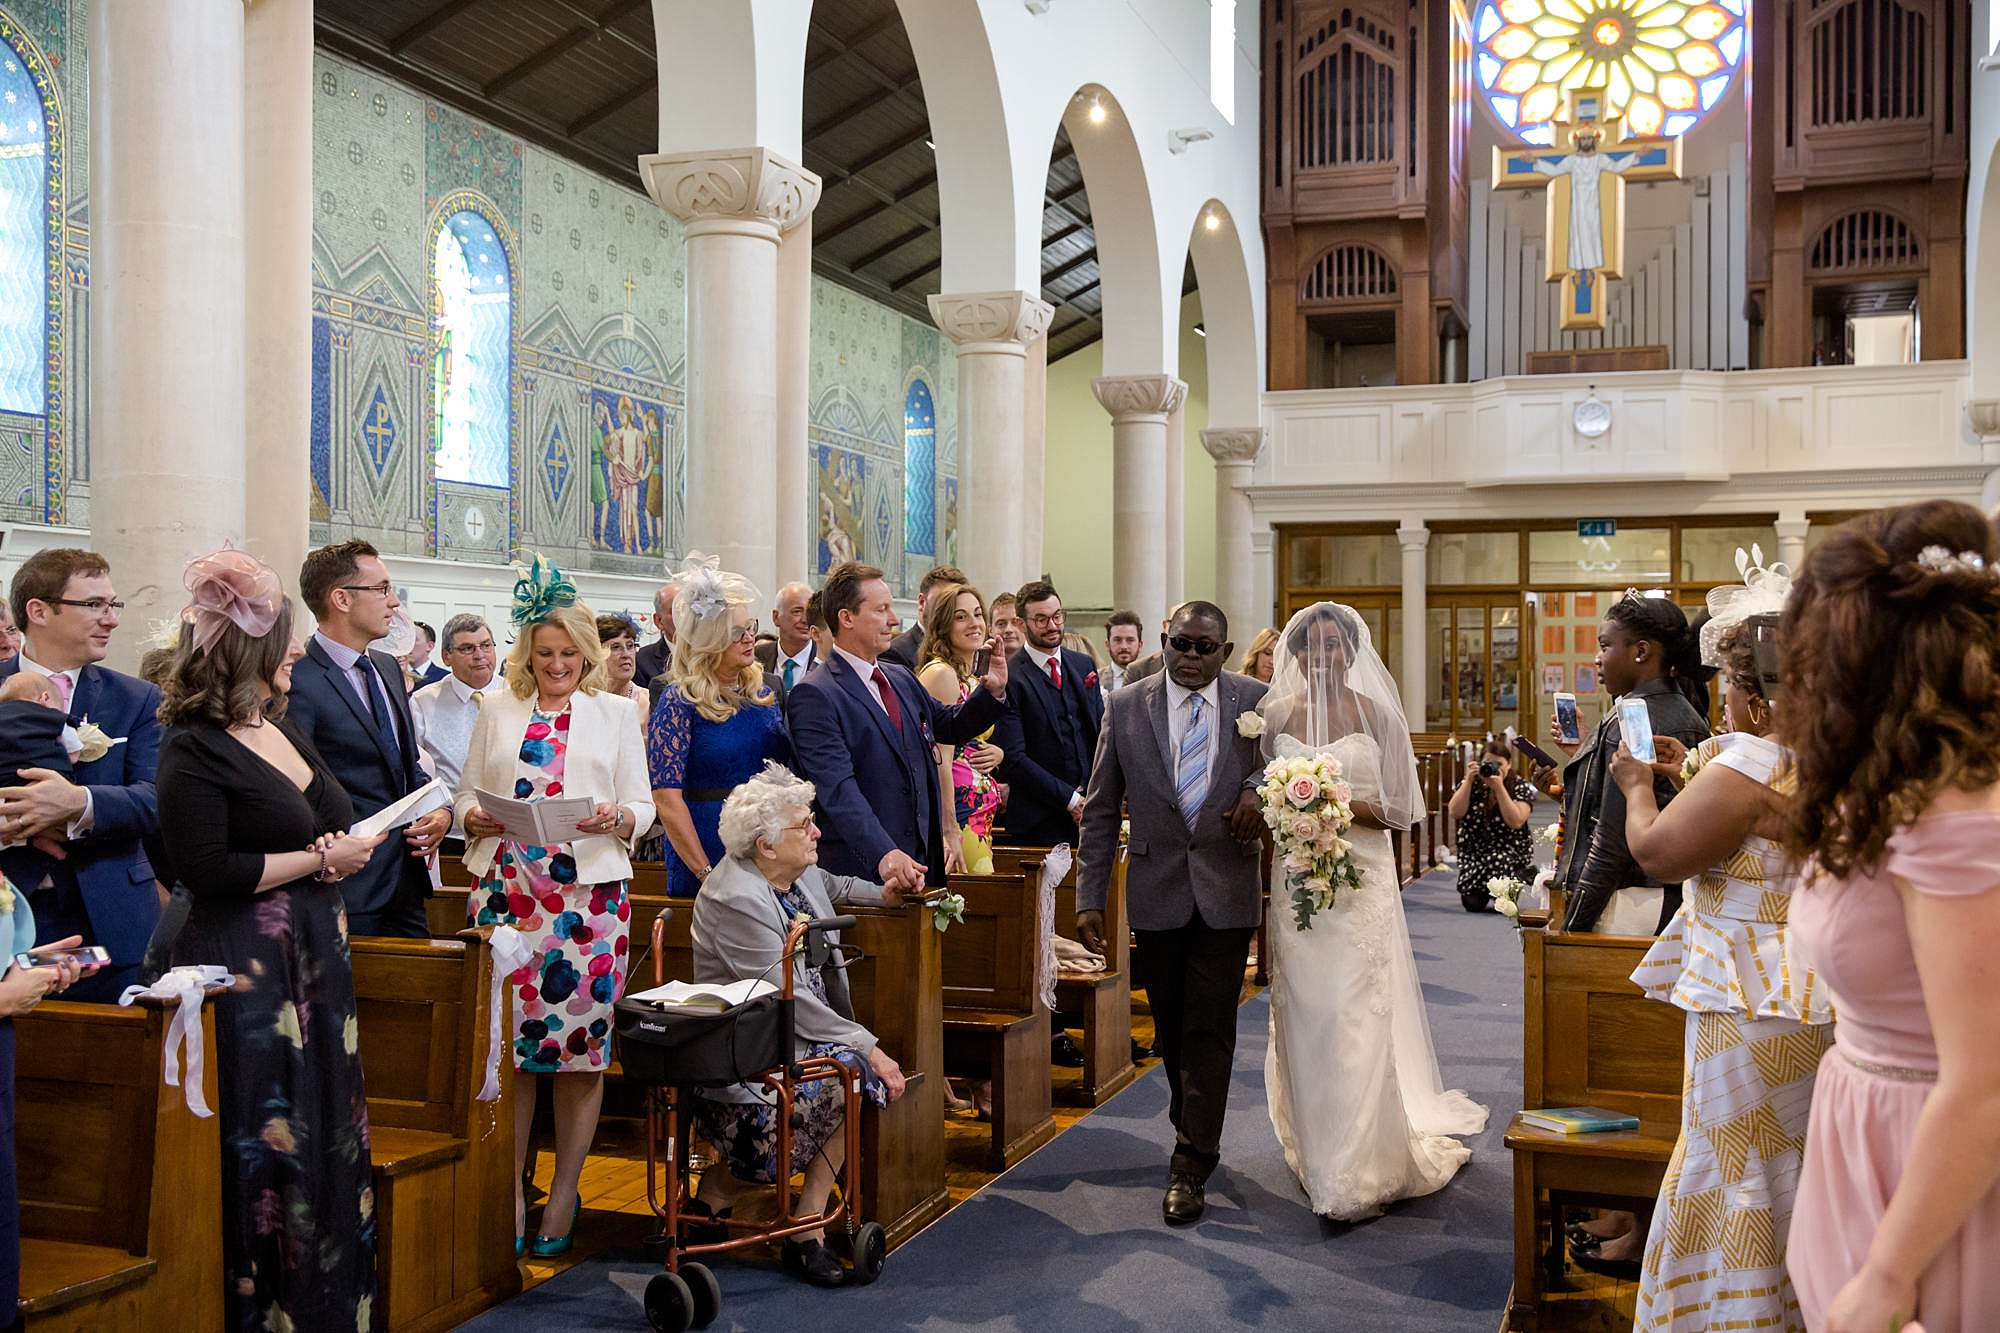 Bank of England Sports Centre wedding bride walks down aisle